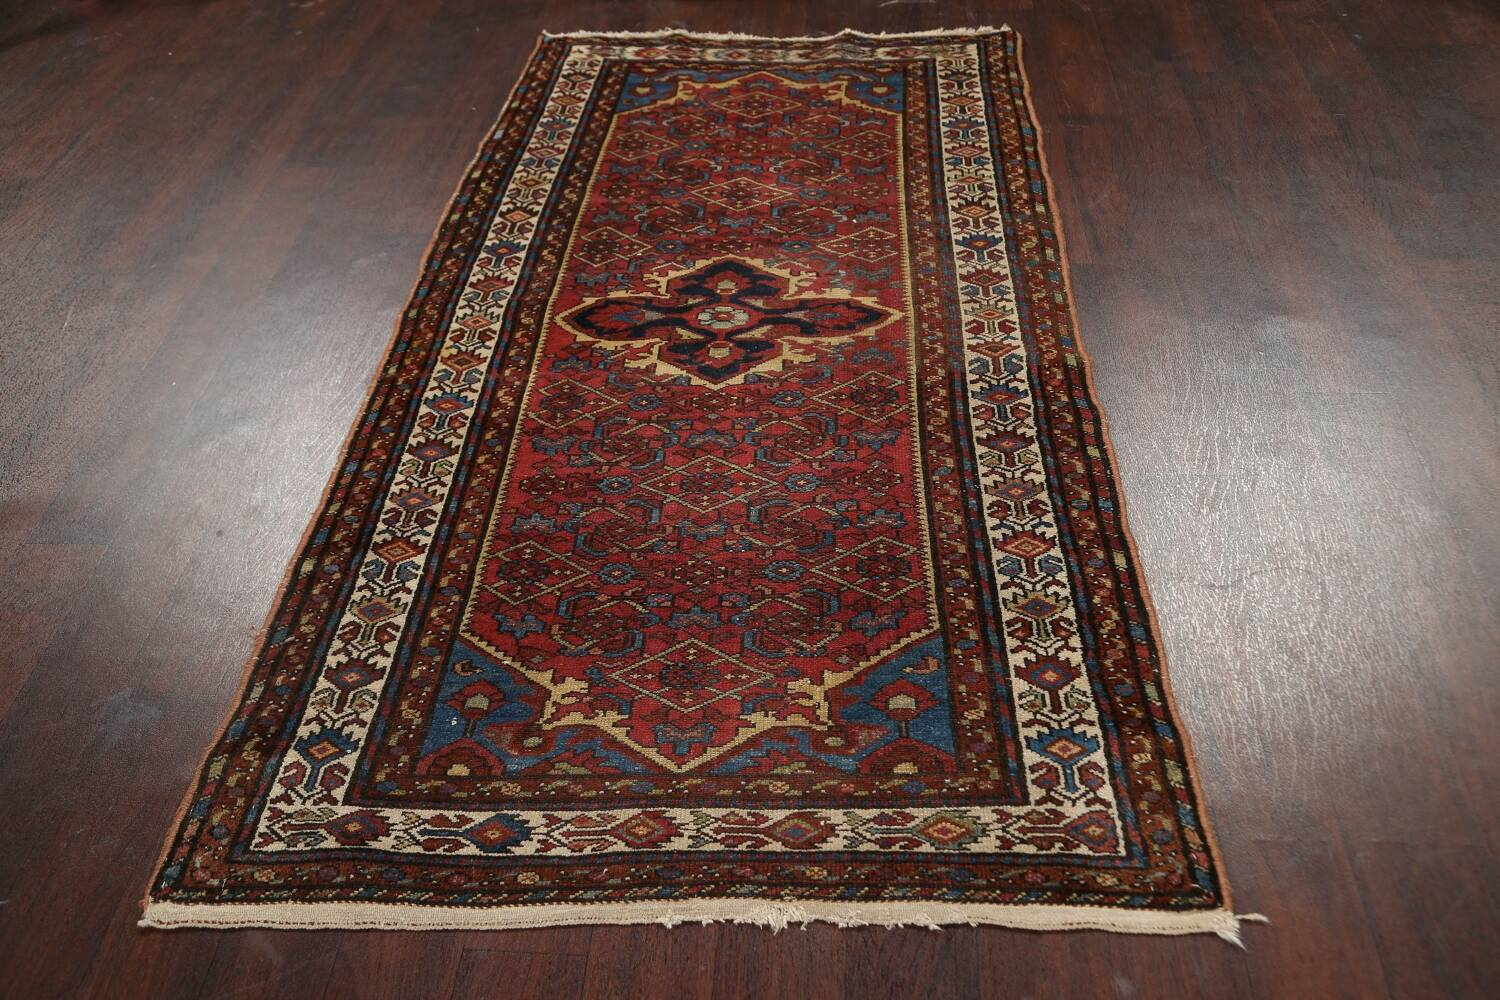 Pre-1900 Antique Vegetable Dye Malayer Persian Area Rug 4x7 image 15